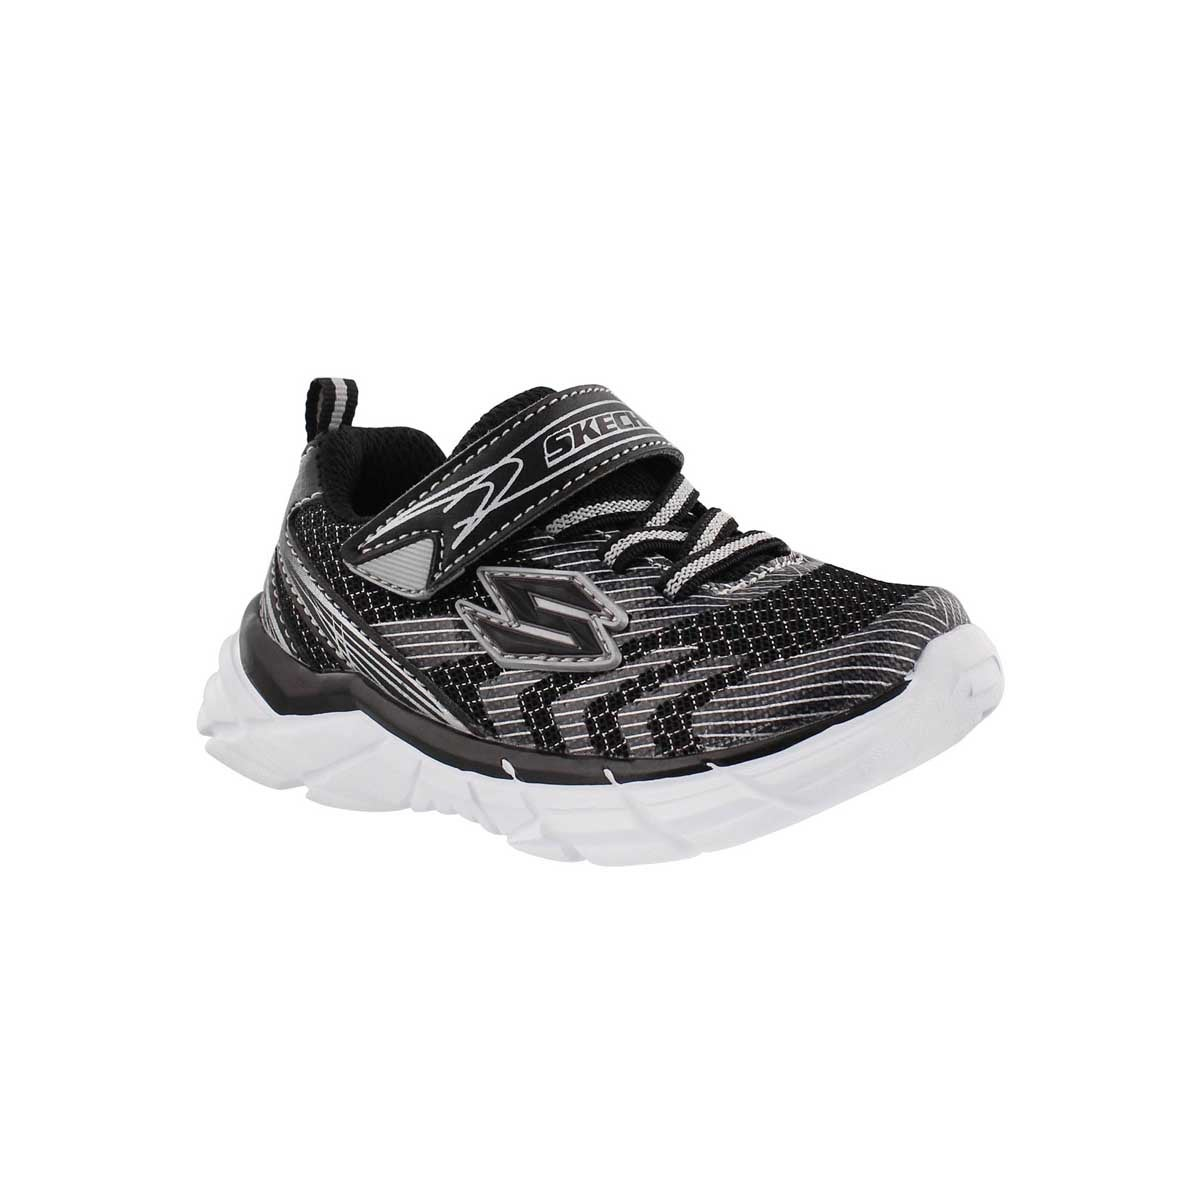 Infants' RIVE black/silver sneakers